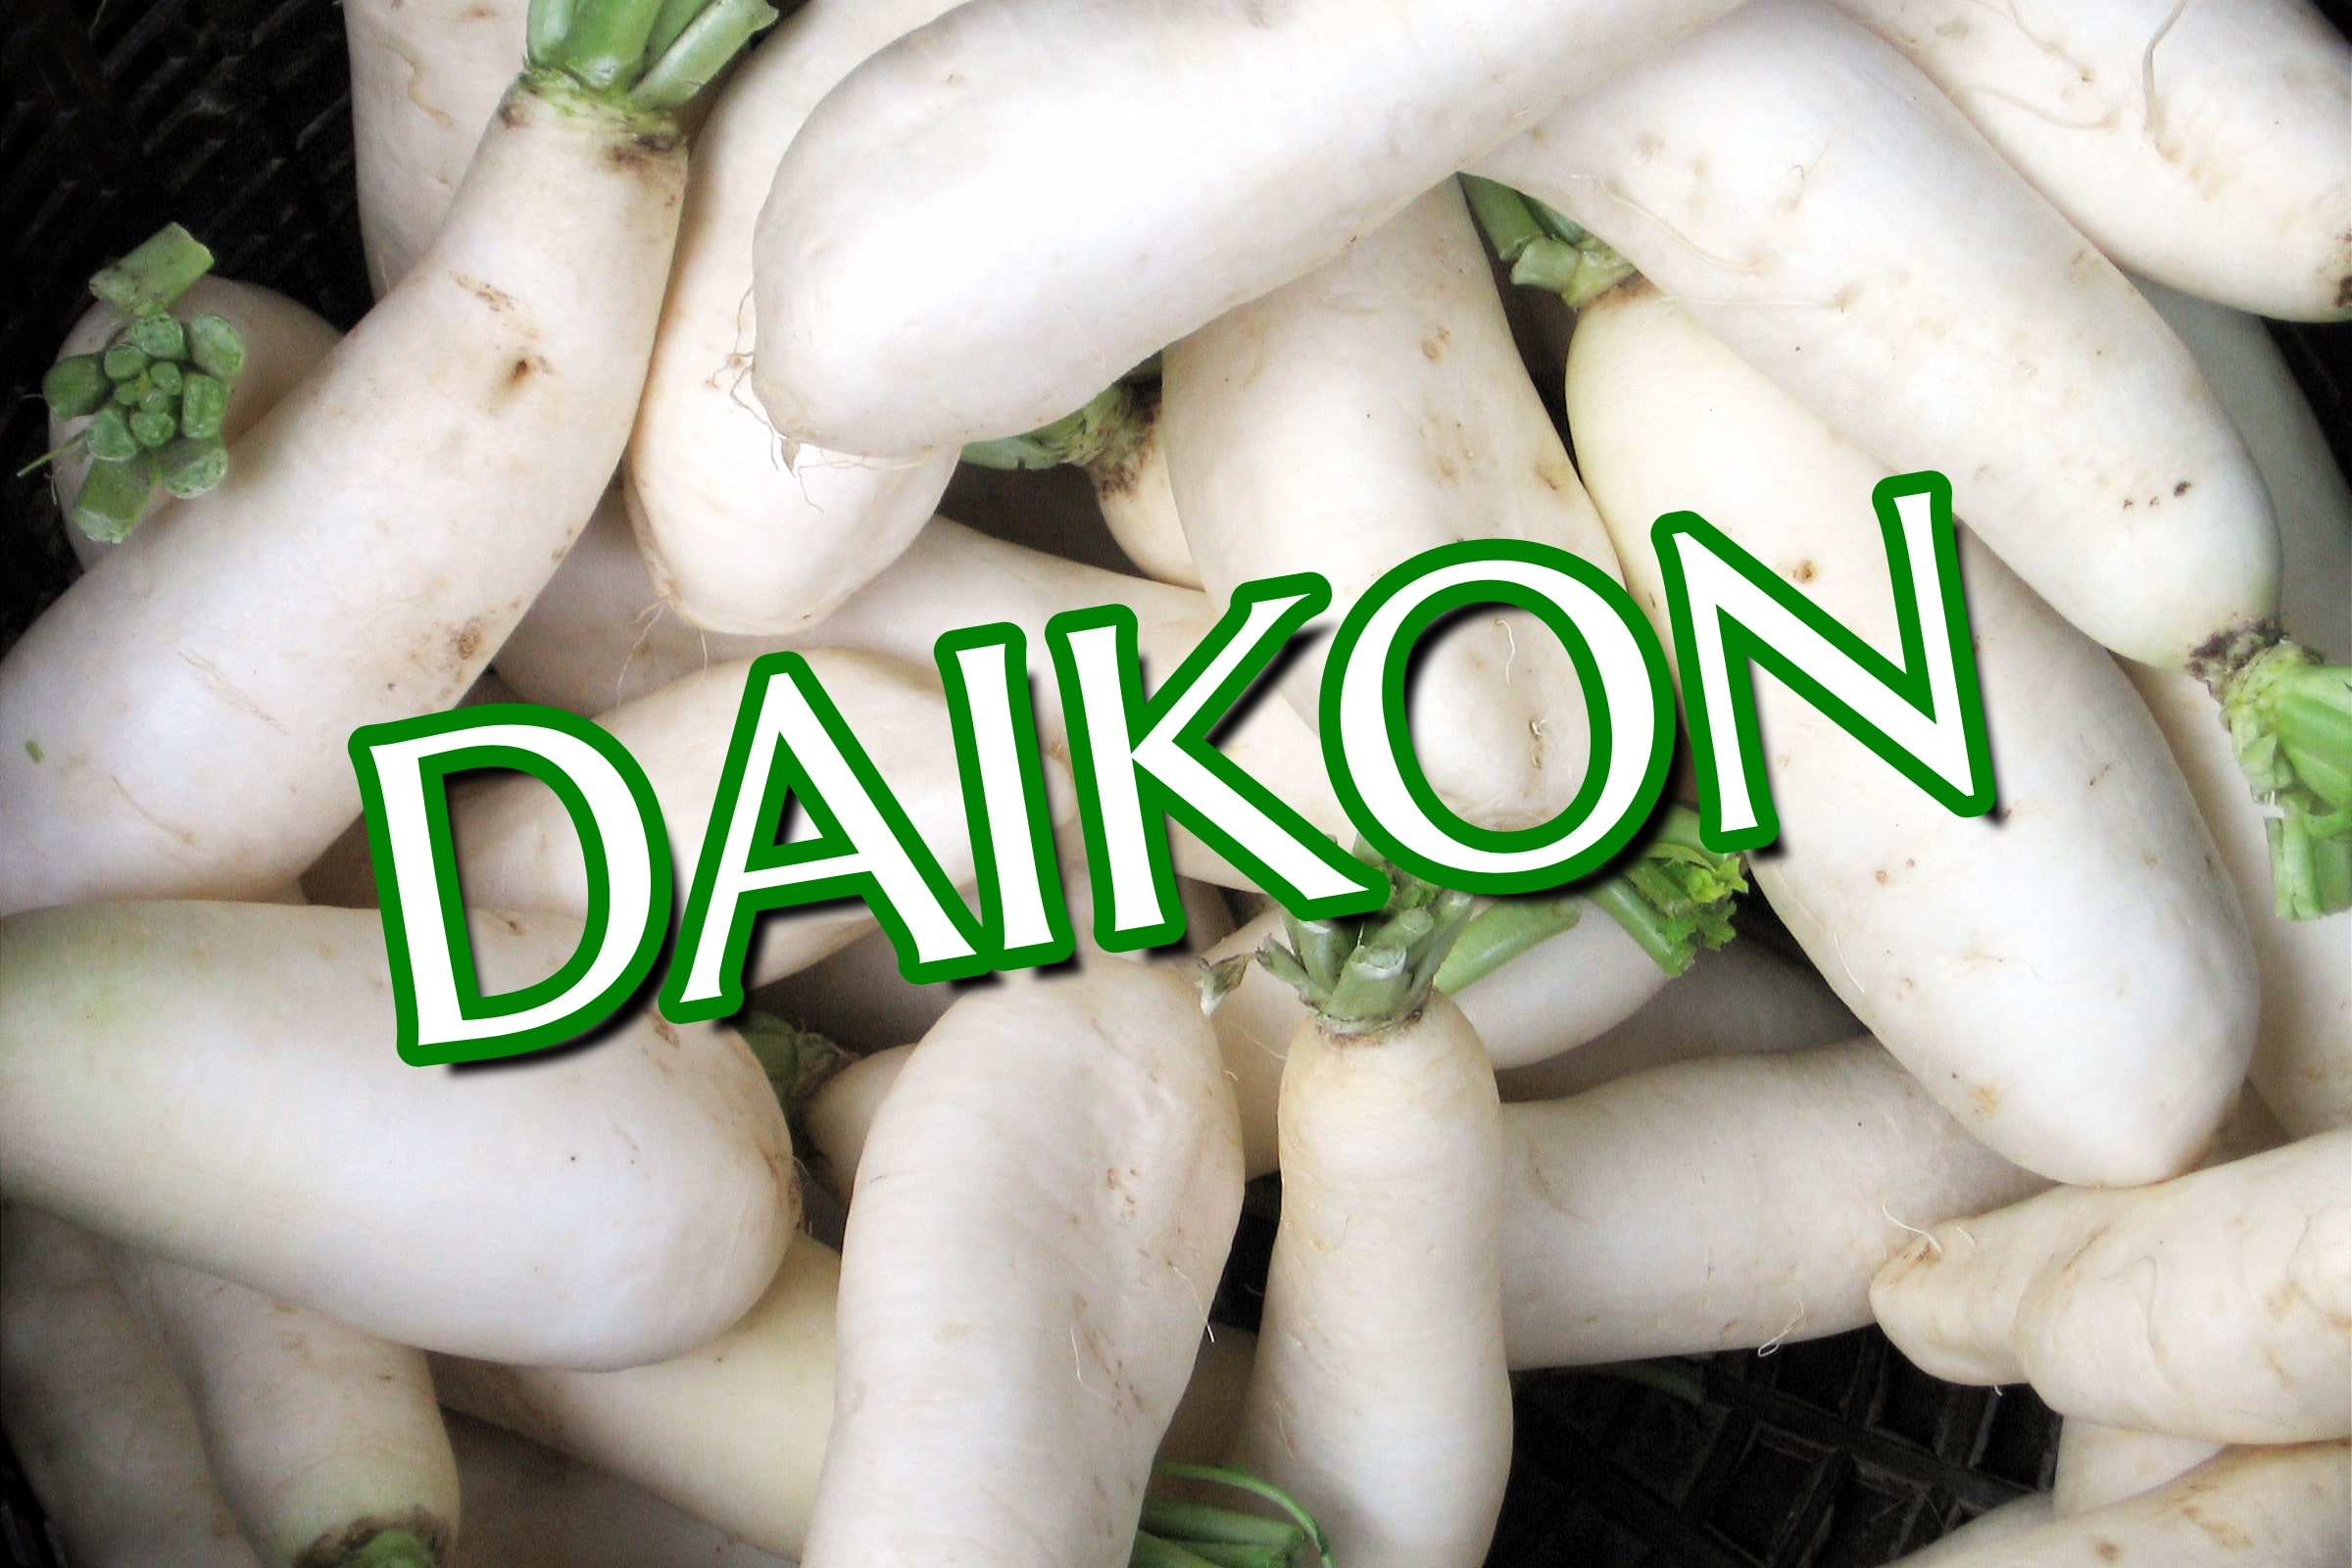 What Is The Daikon Plant?